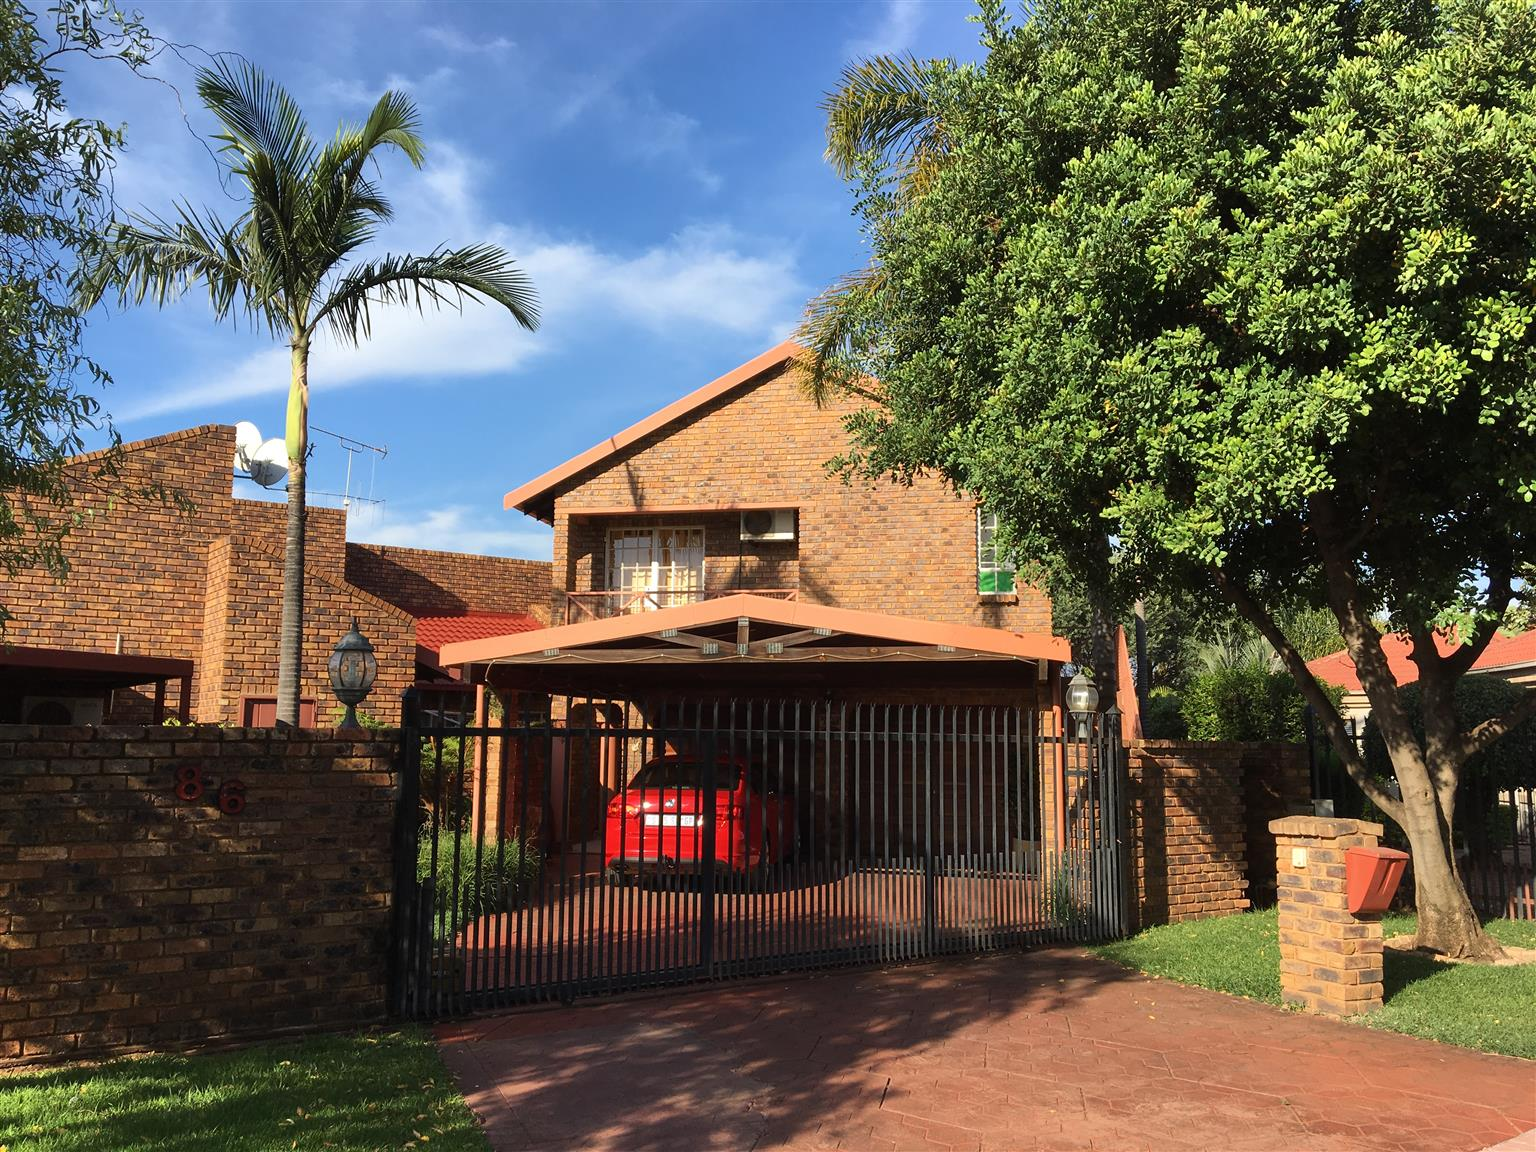 1 Bedroom Flat to Rent in Montana Park - Water, Lights & Full DSTV Included - R5000.00